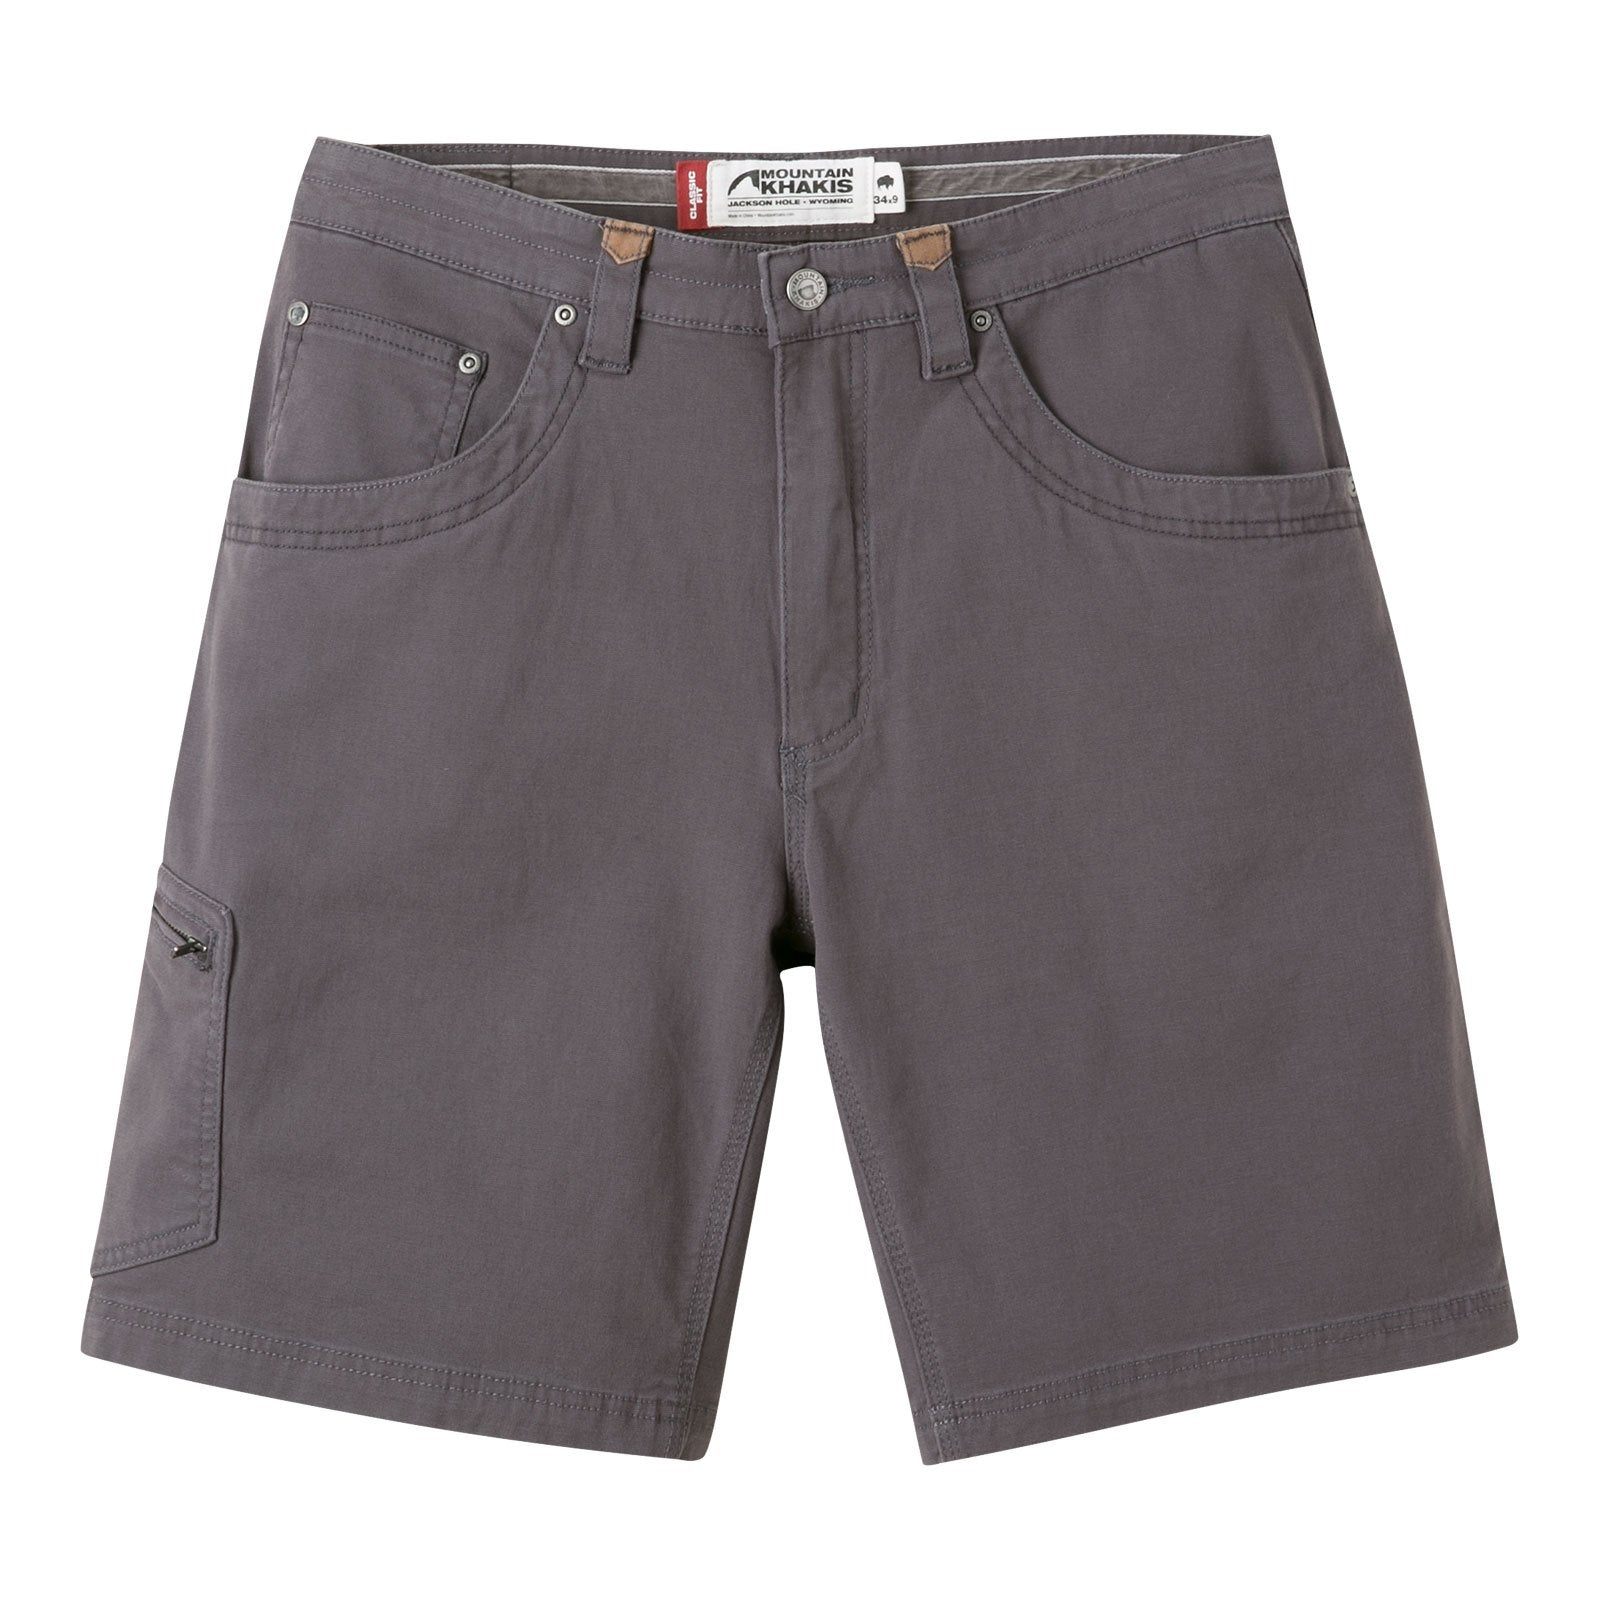 Mountain Khakis: Slate Classic Fit Men's Short